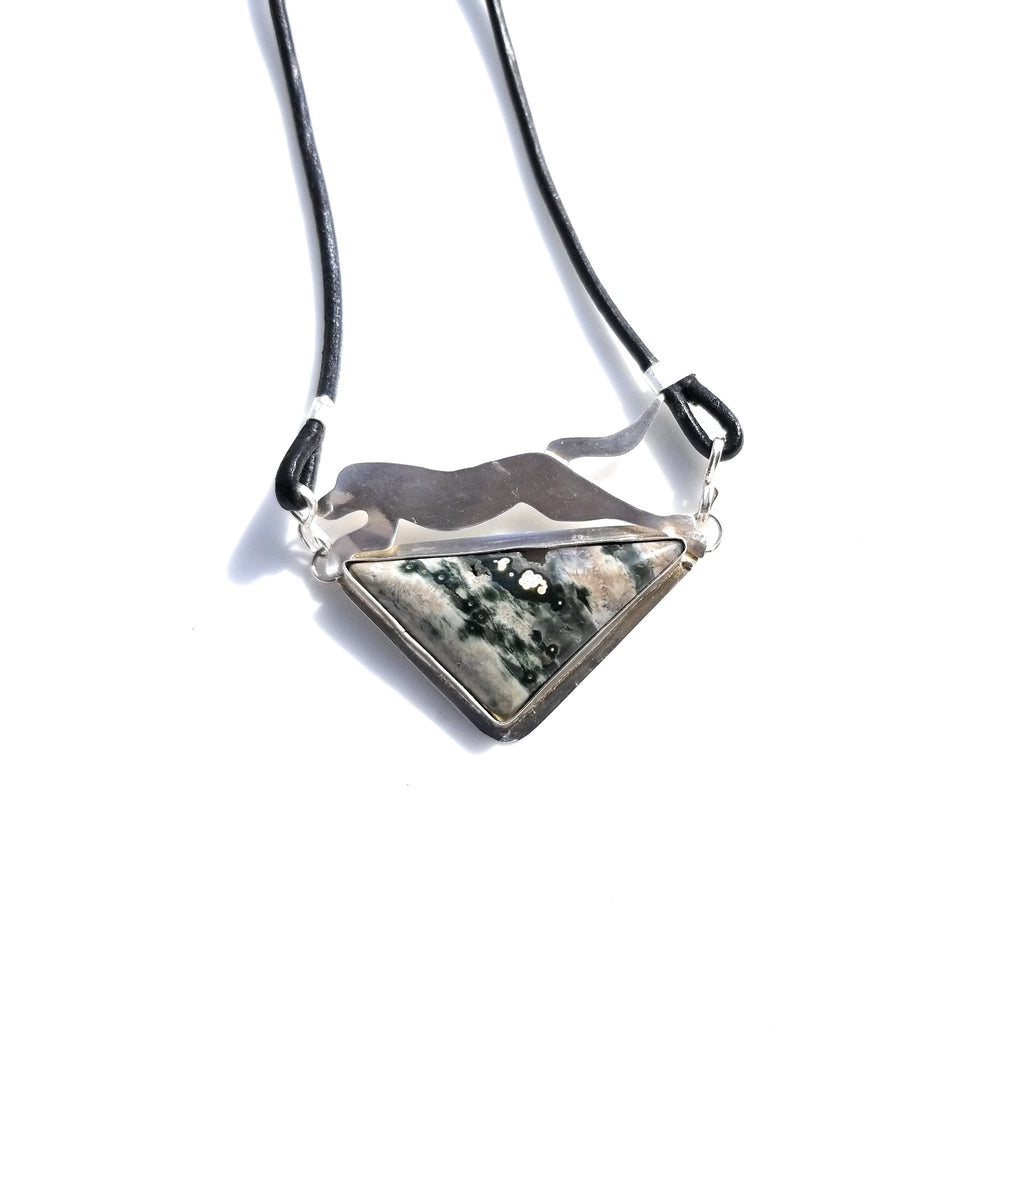 Grayhound dog with Orbicular Ocean Jasper silver pendant necklace